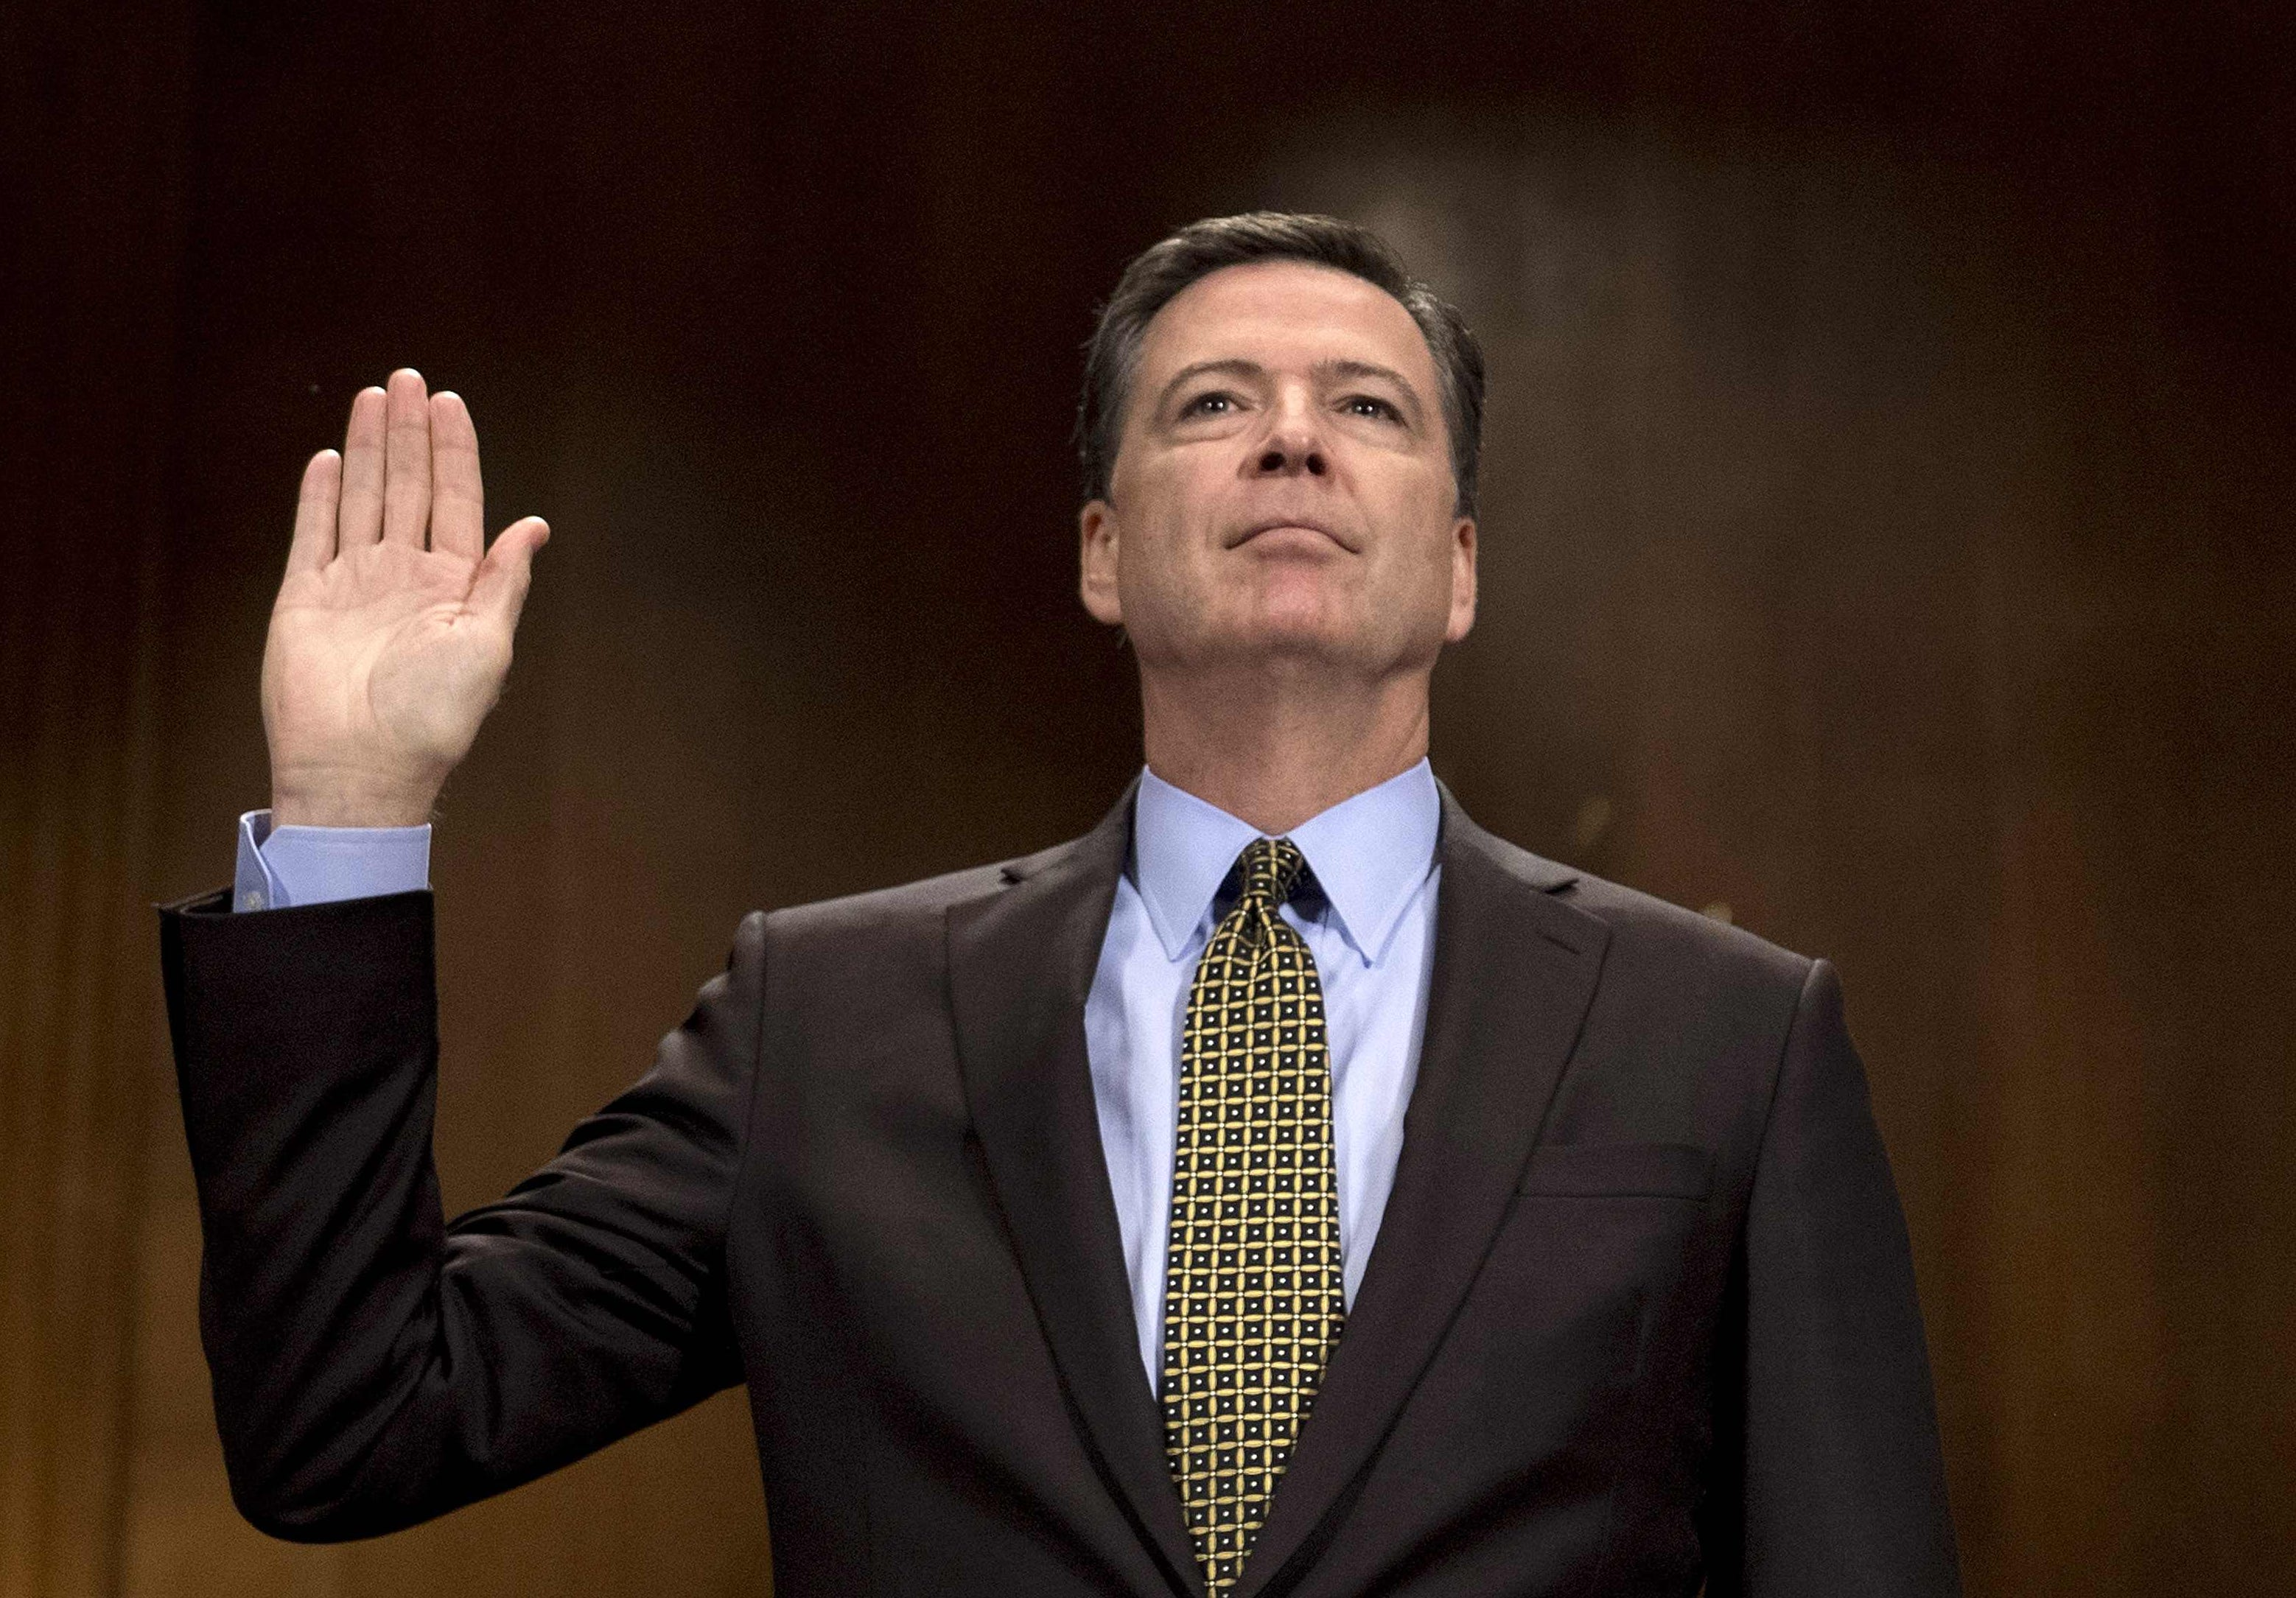 FBI Director James Comey is sworn in prior to testifying before the Senate Judiciary Committee on Capitol Hill in Washington, on May 3, 2017.